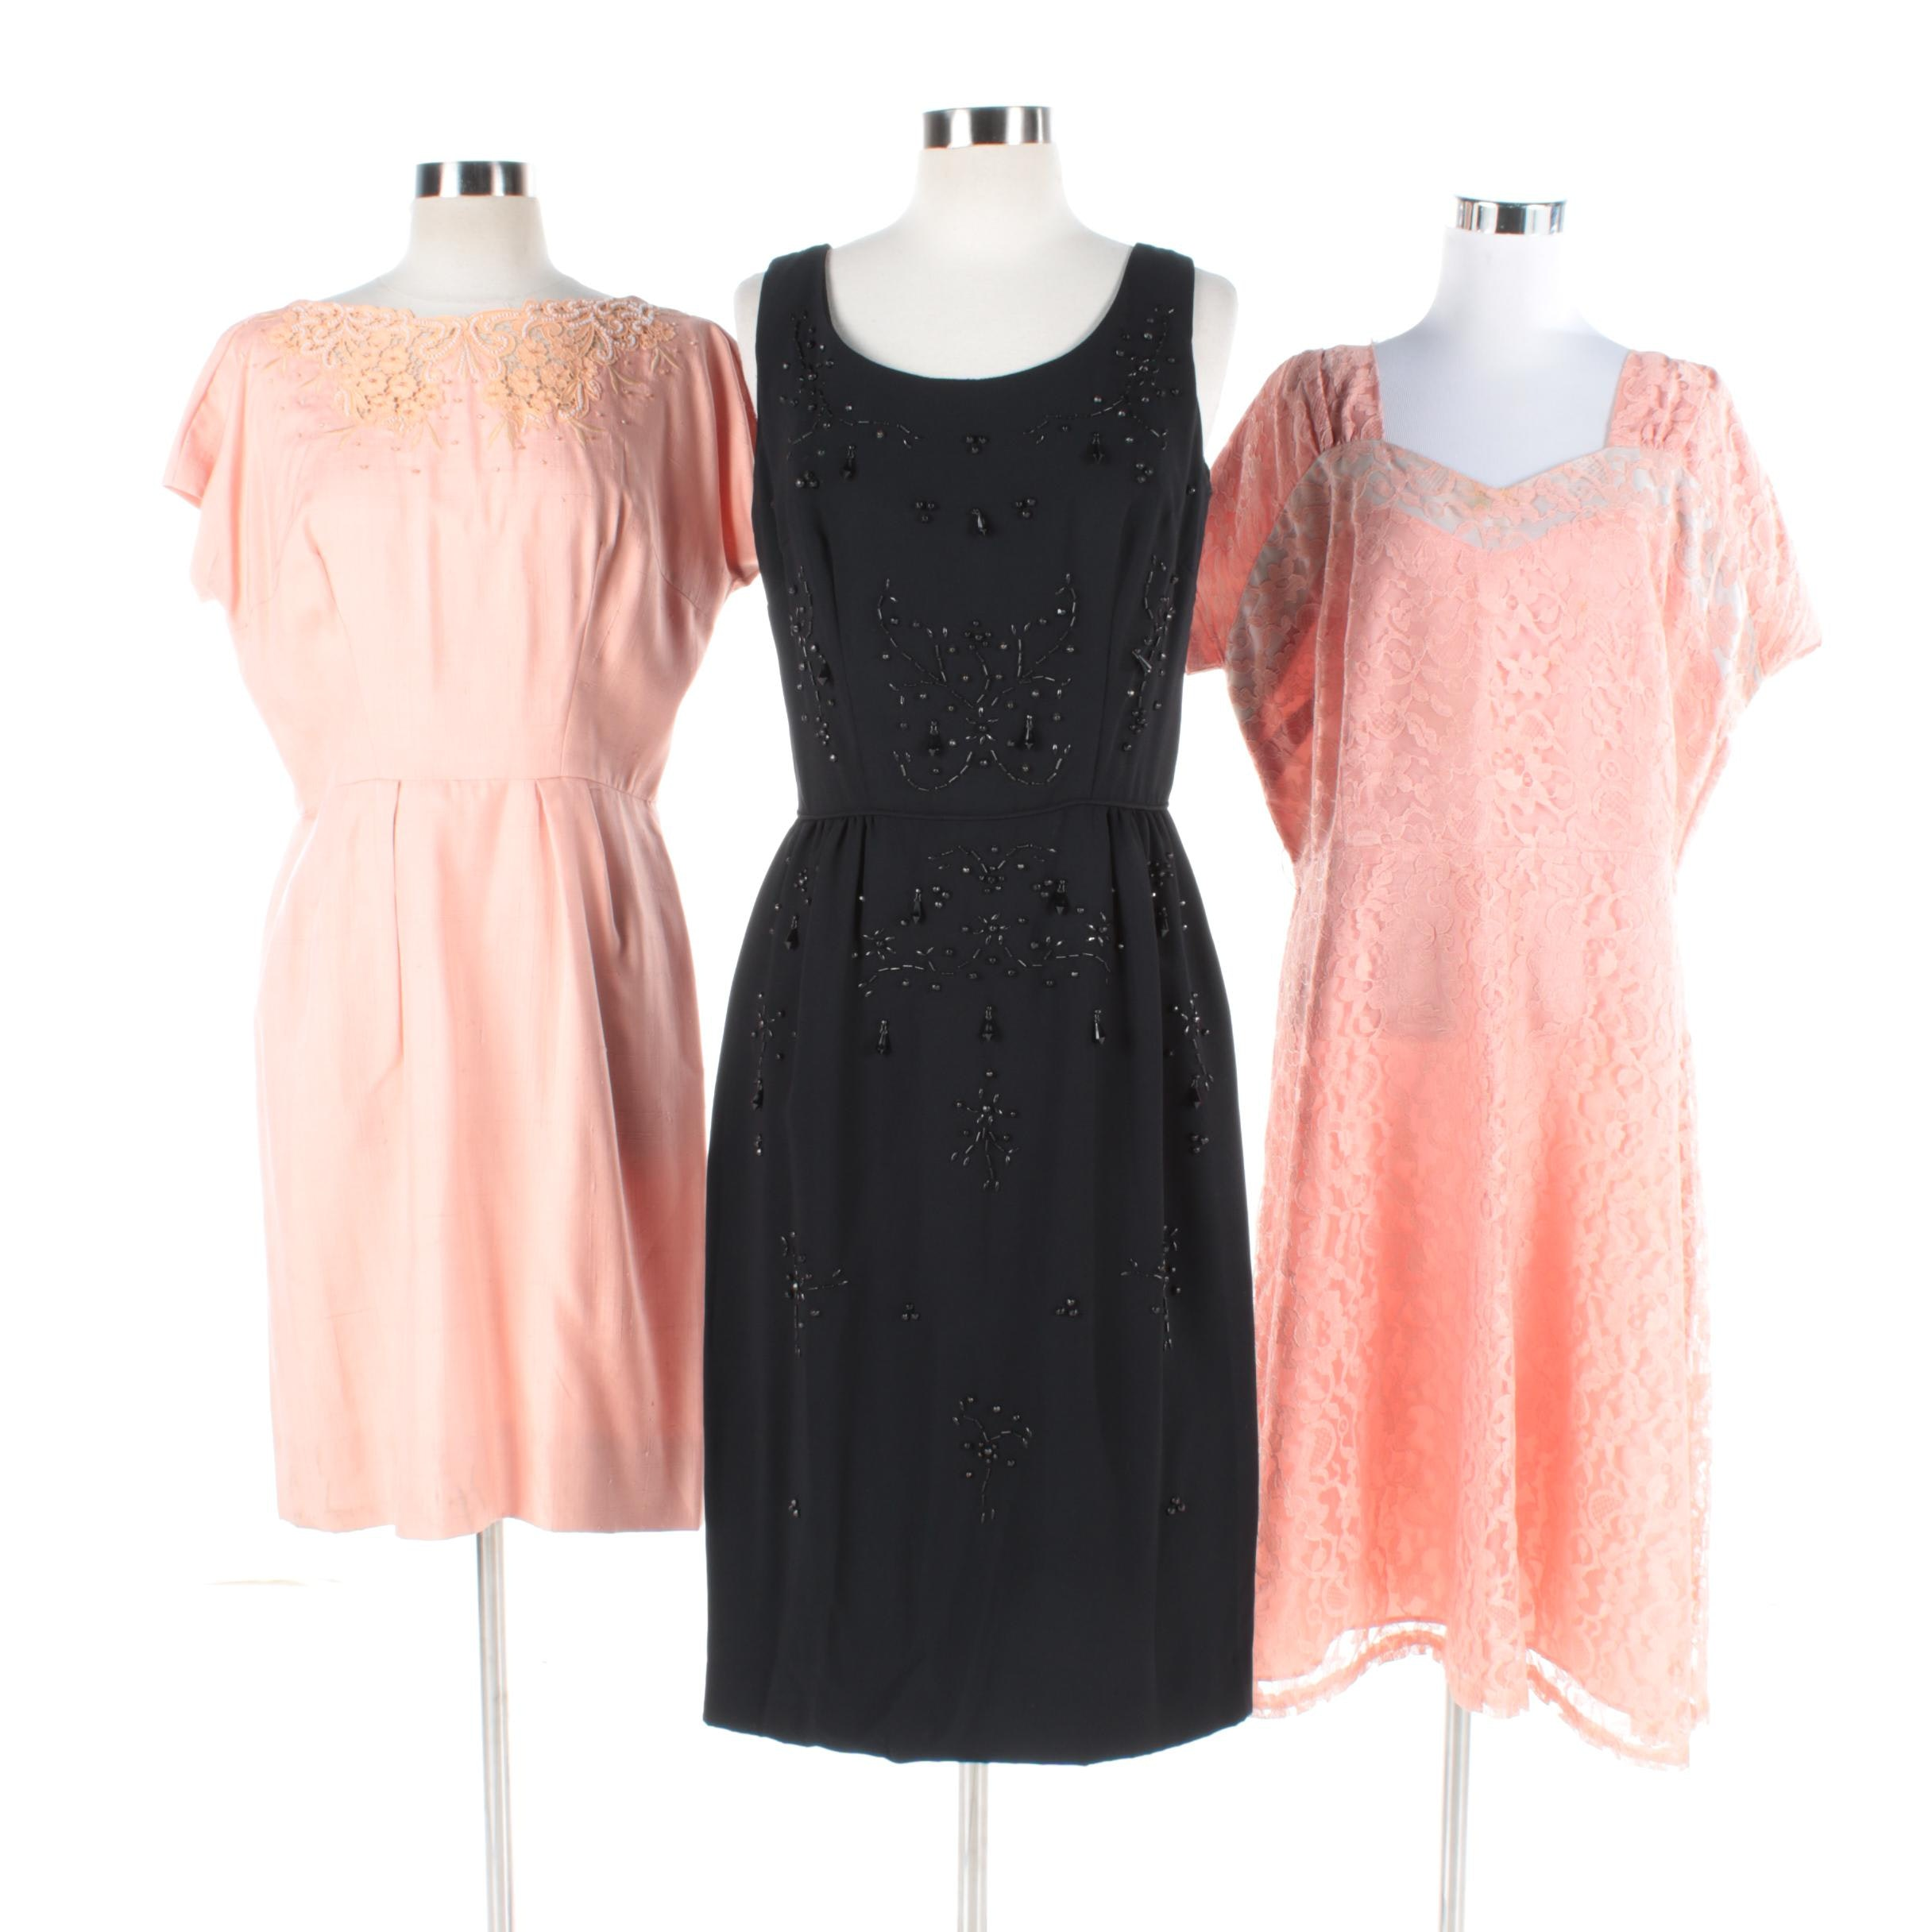 Women's Vintage Dresses with Lace and Bead Accents